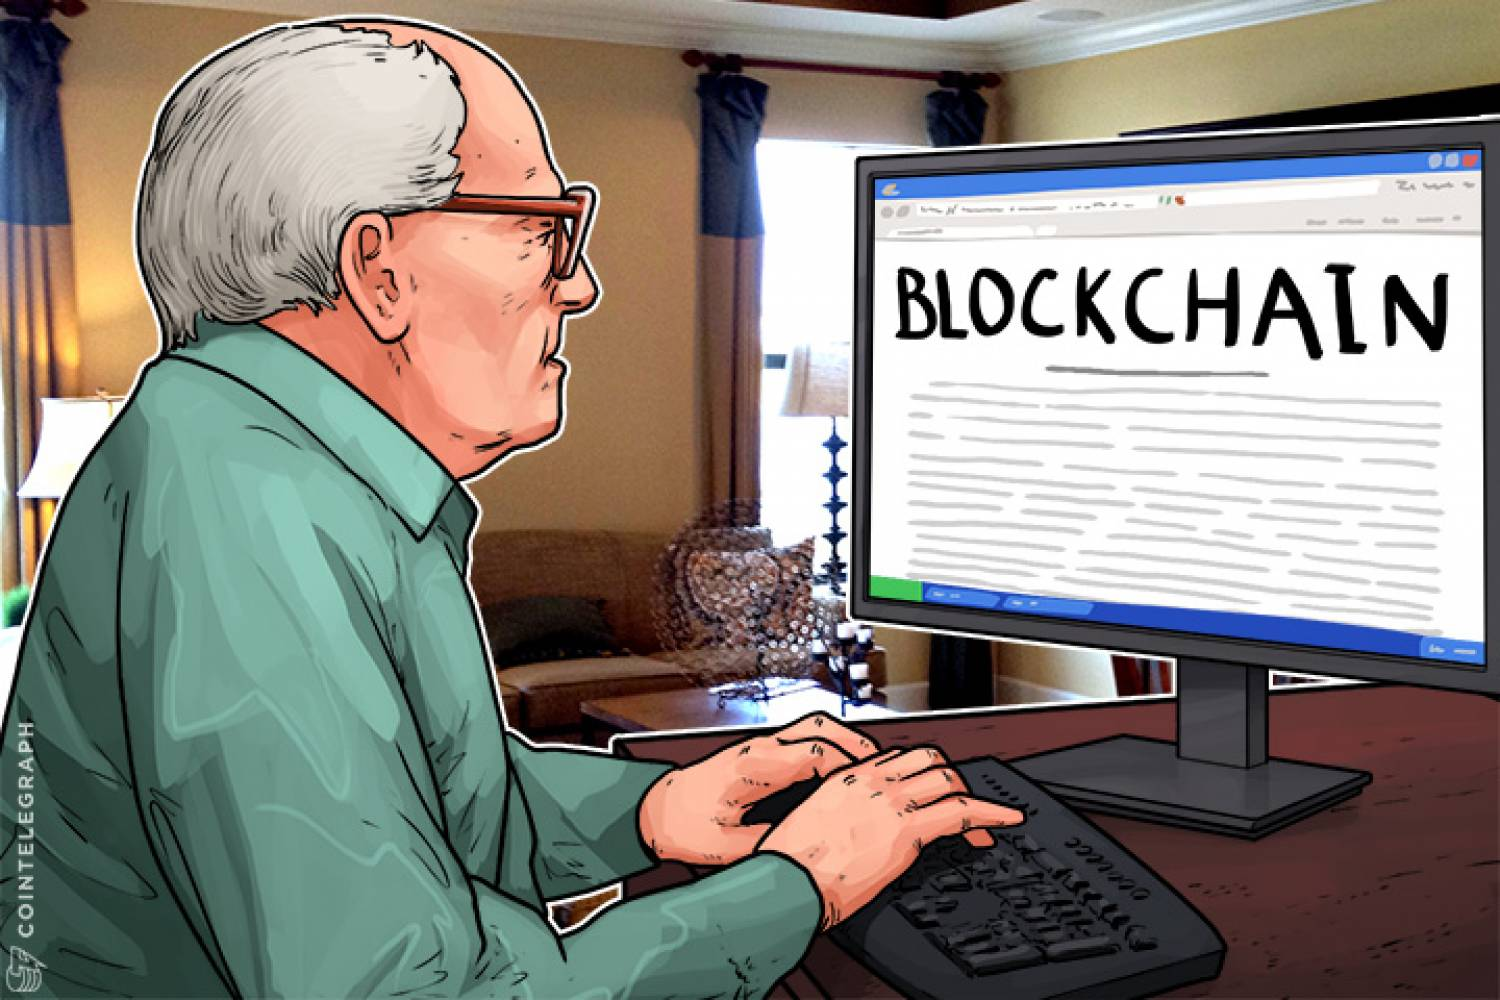 An old man trying to understand the blockchain technology